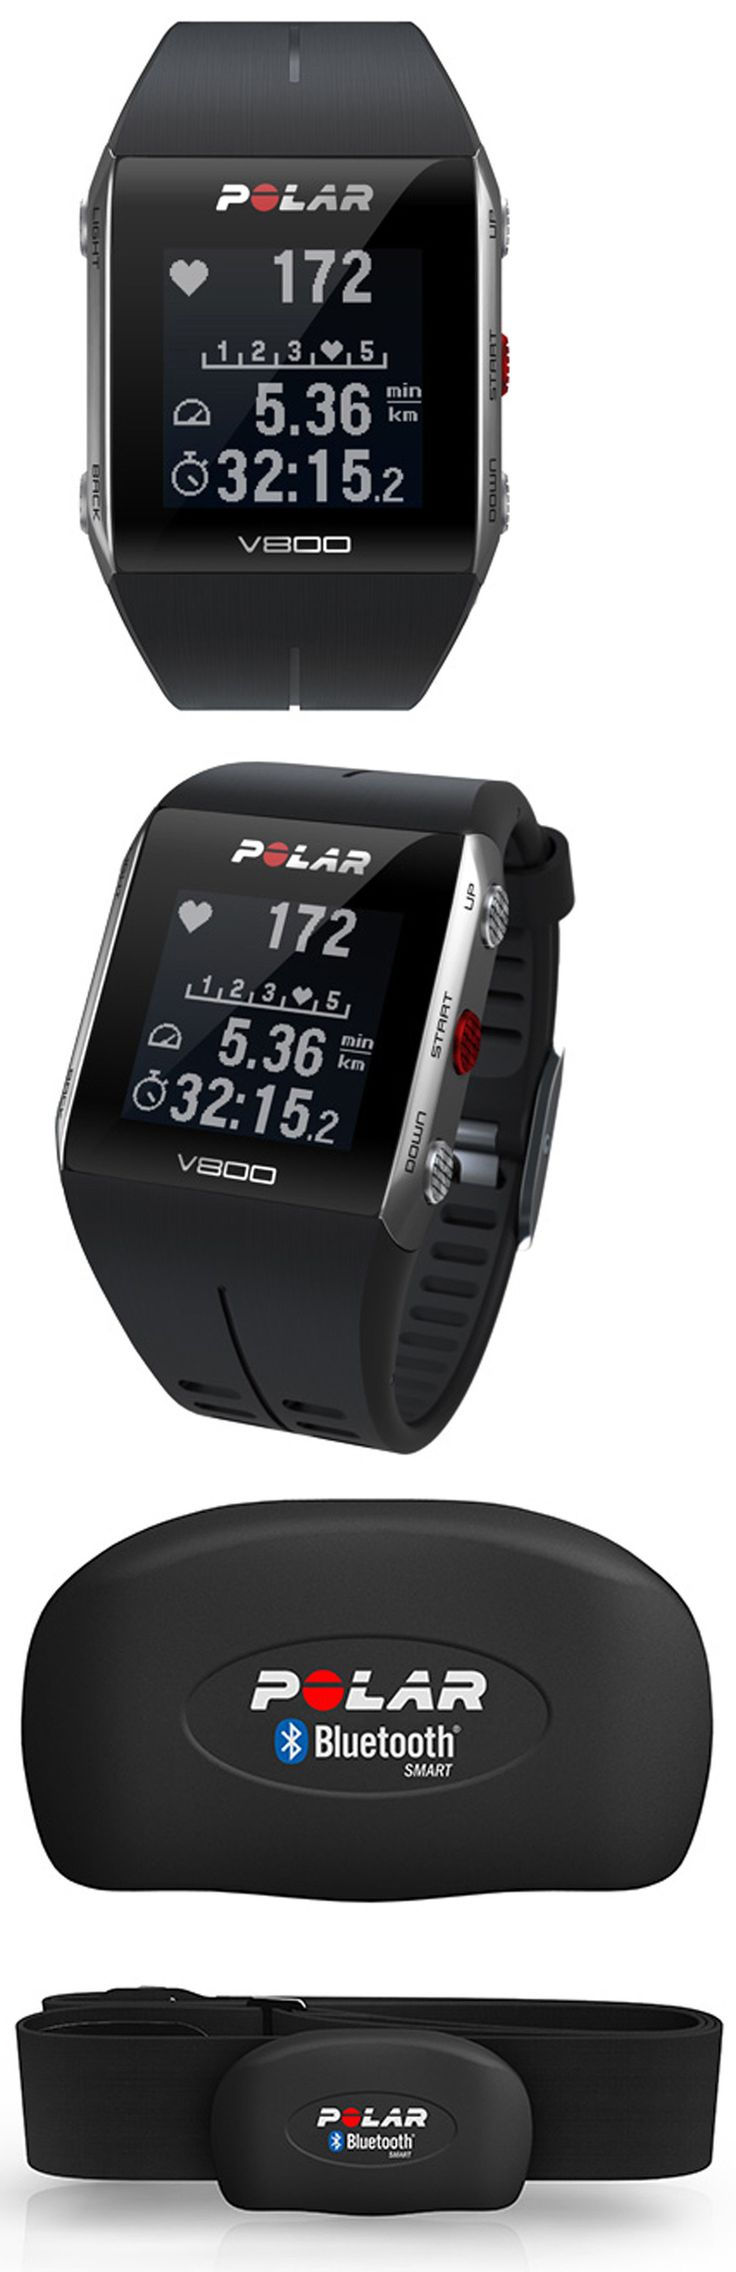 Heart Rate Monitors 15277: Polar V800 Gps Sports Watch Heart Rate Monitor Black 90060768 -> BUY IT NOW ONLY: $449 on eBay!